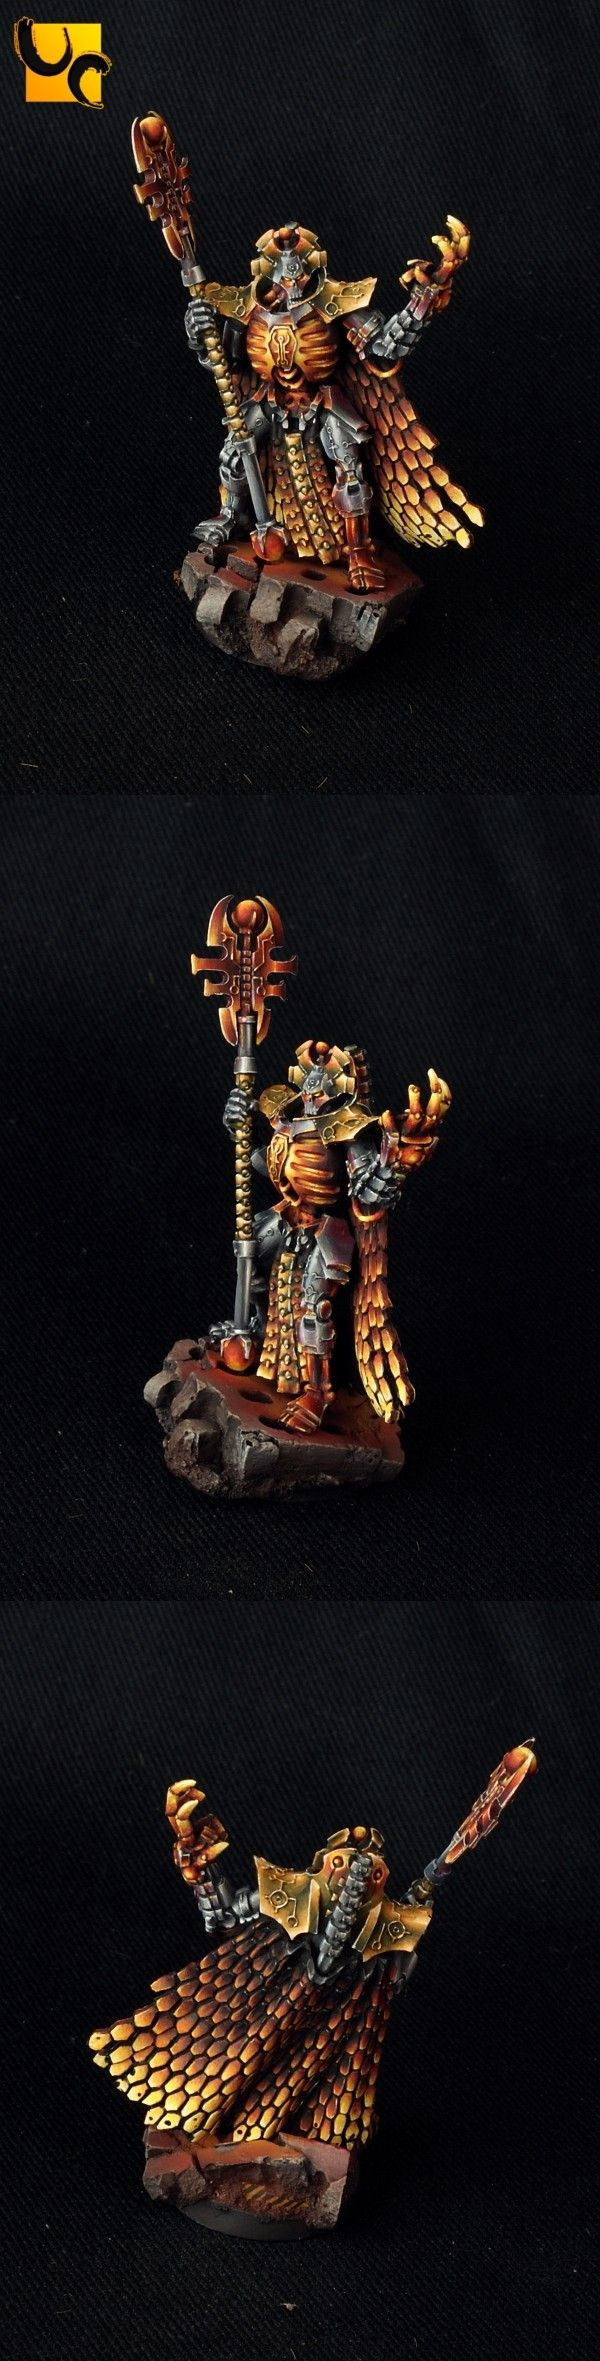 40k - Imotekh the Stormlord by UnlimitedColours